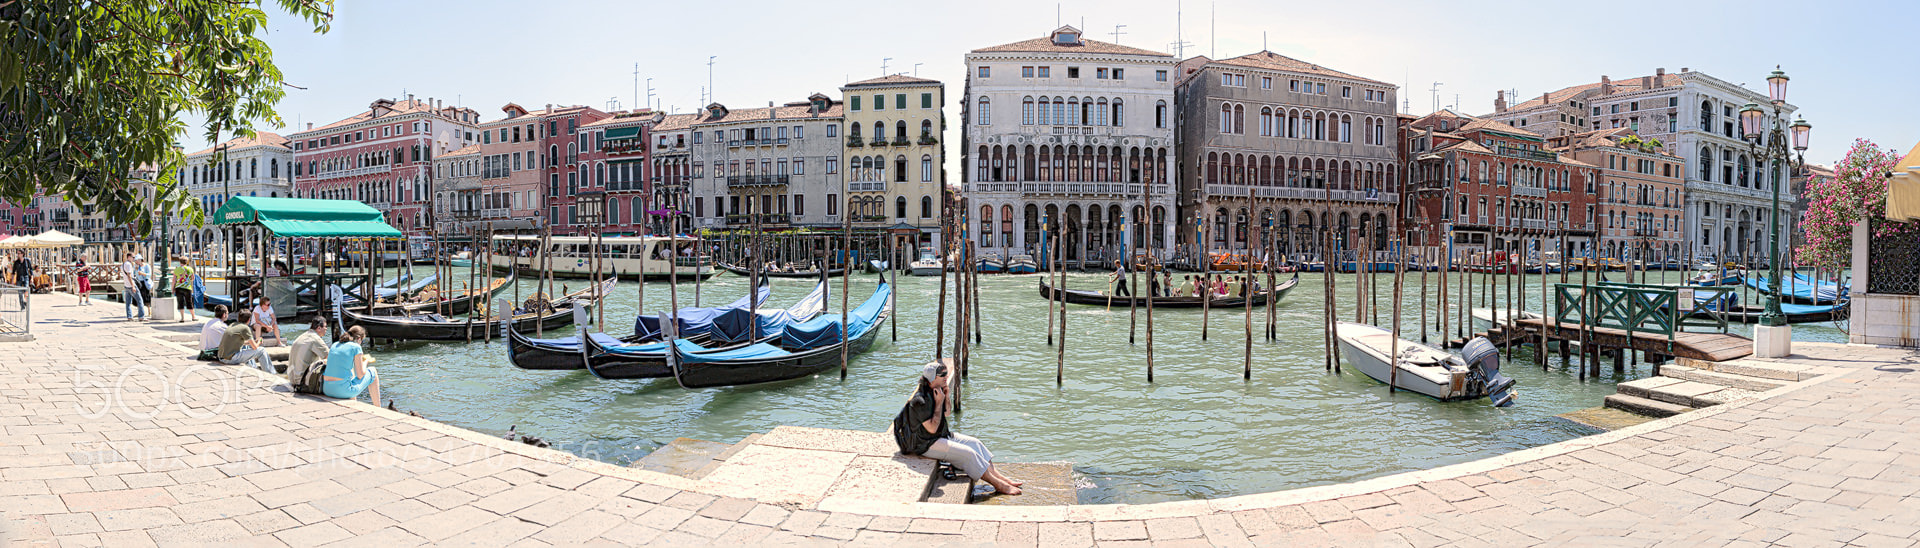 Photograph Venice Panorama by Michael Mehl on 500px